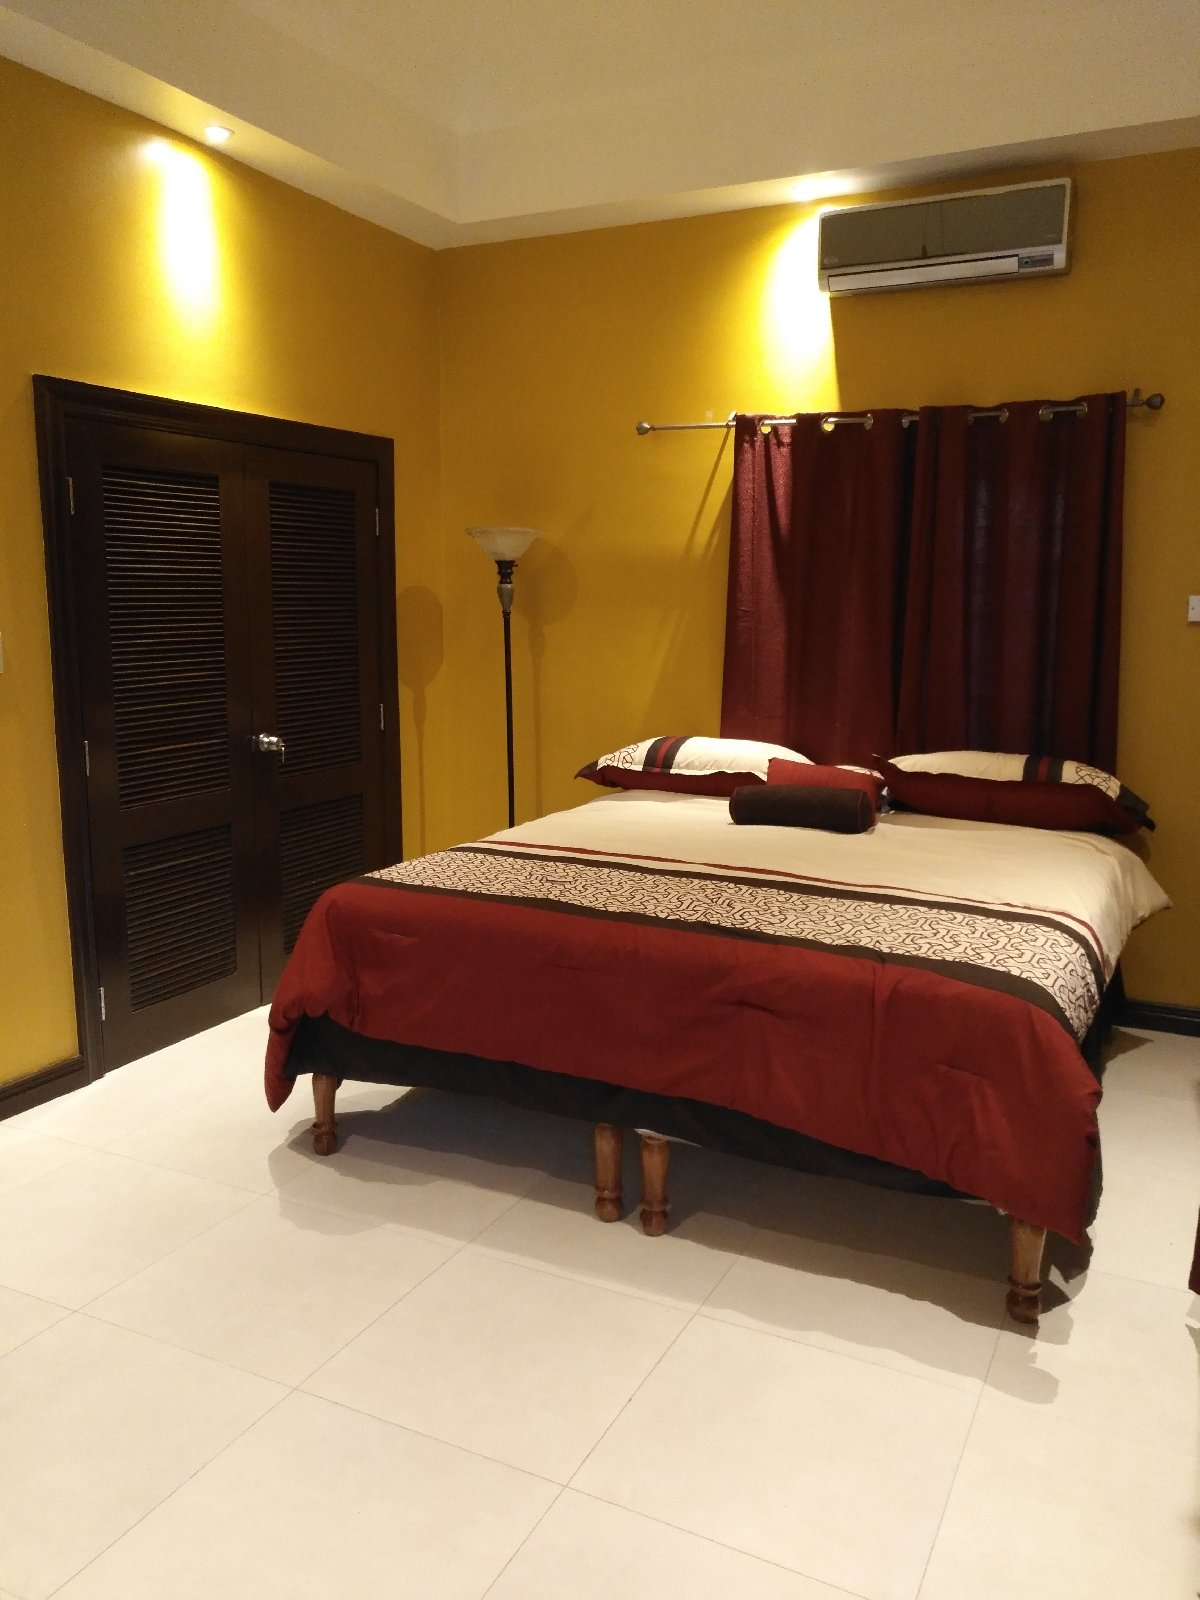 Furnished Two Bedroom Apartment For Rent In Coral Gardens St James Apartments